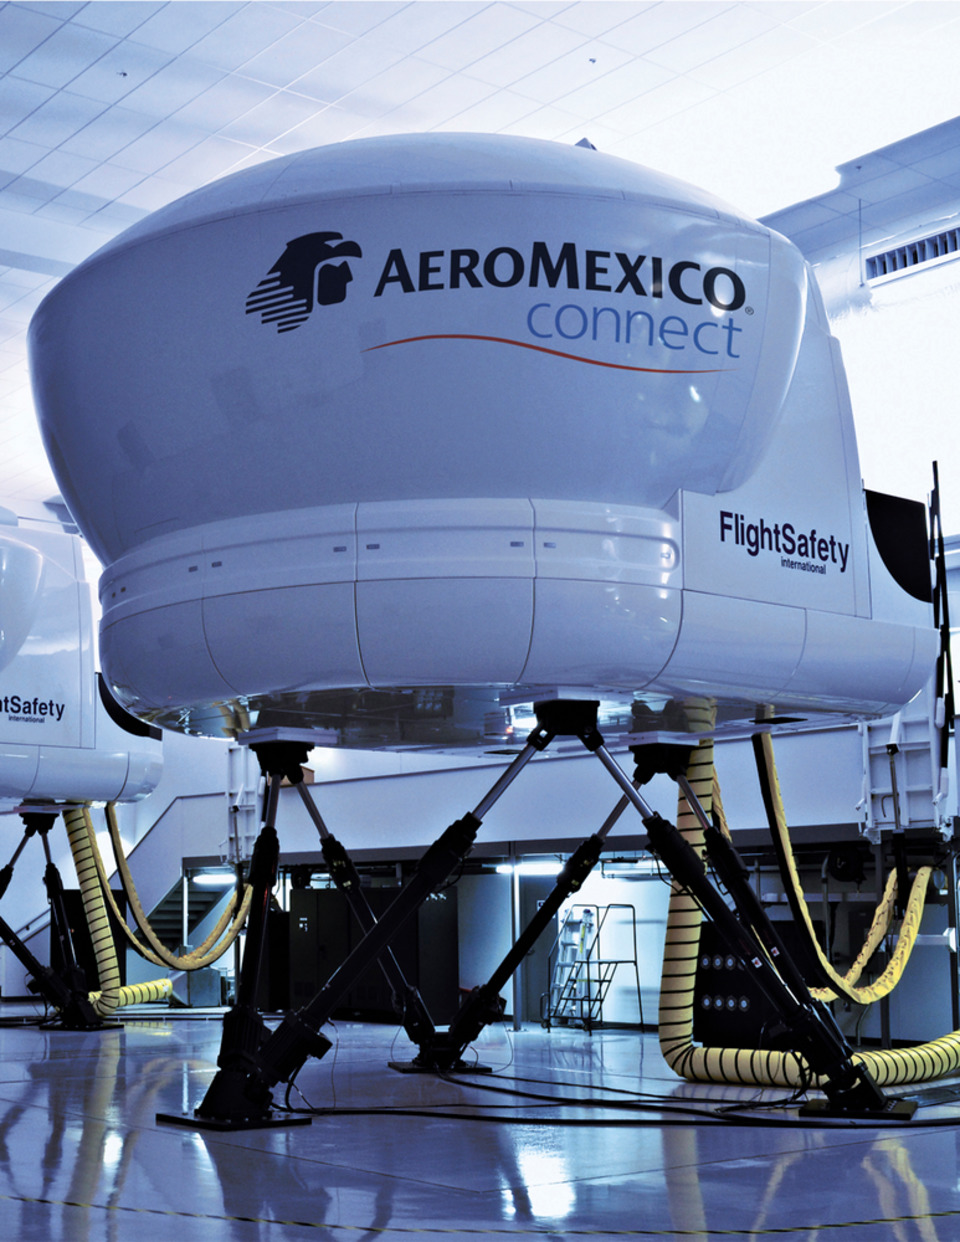 FlightSafety's Embraer 190 Simulator Built for Aeroméxico Receives